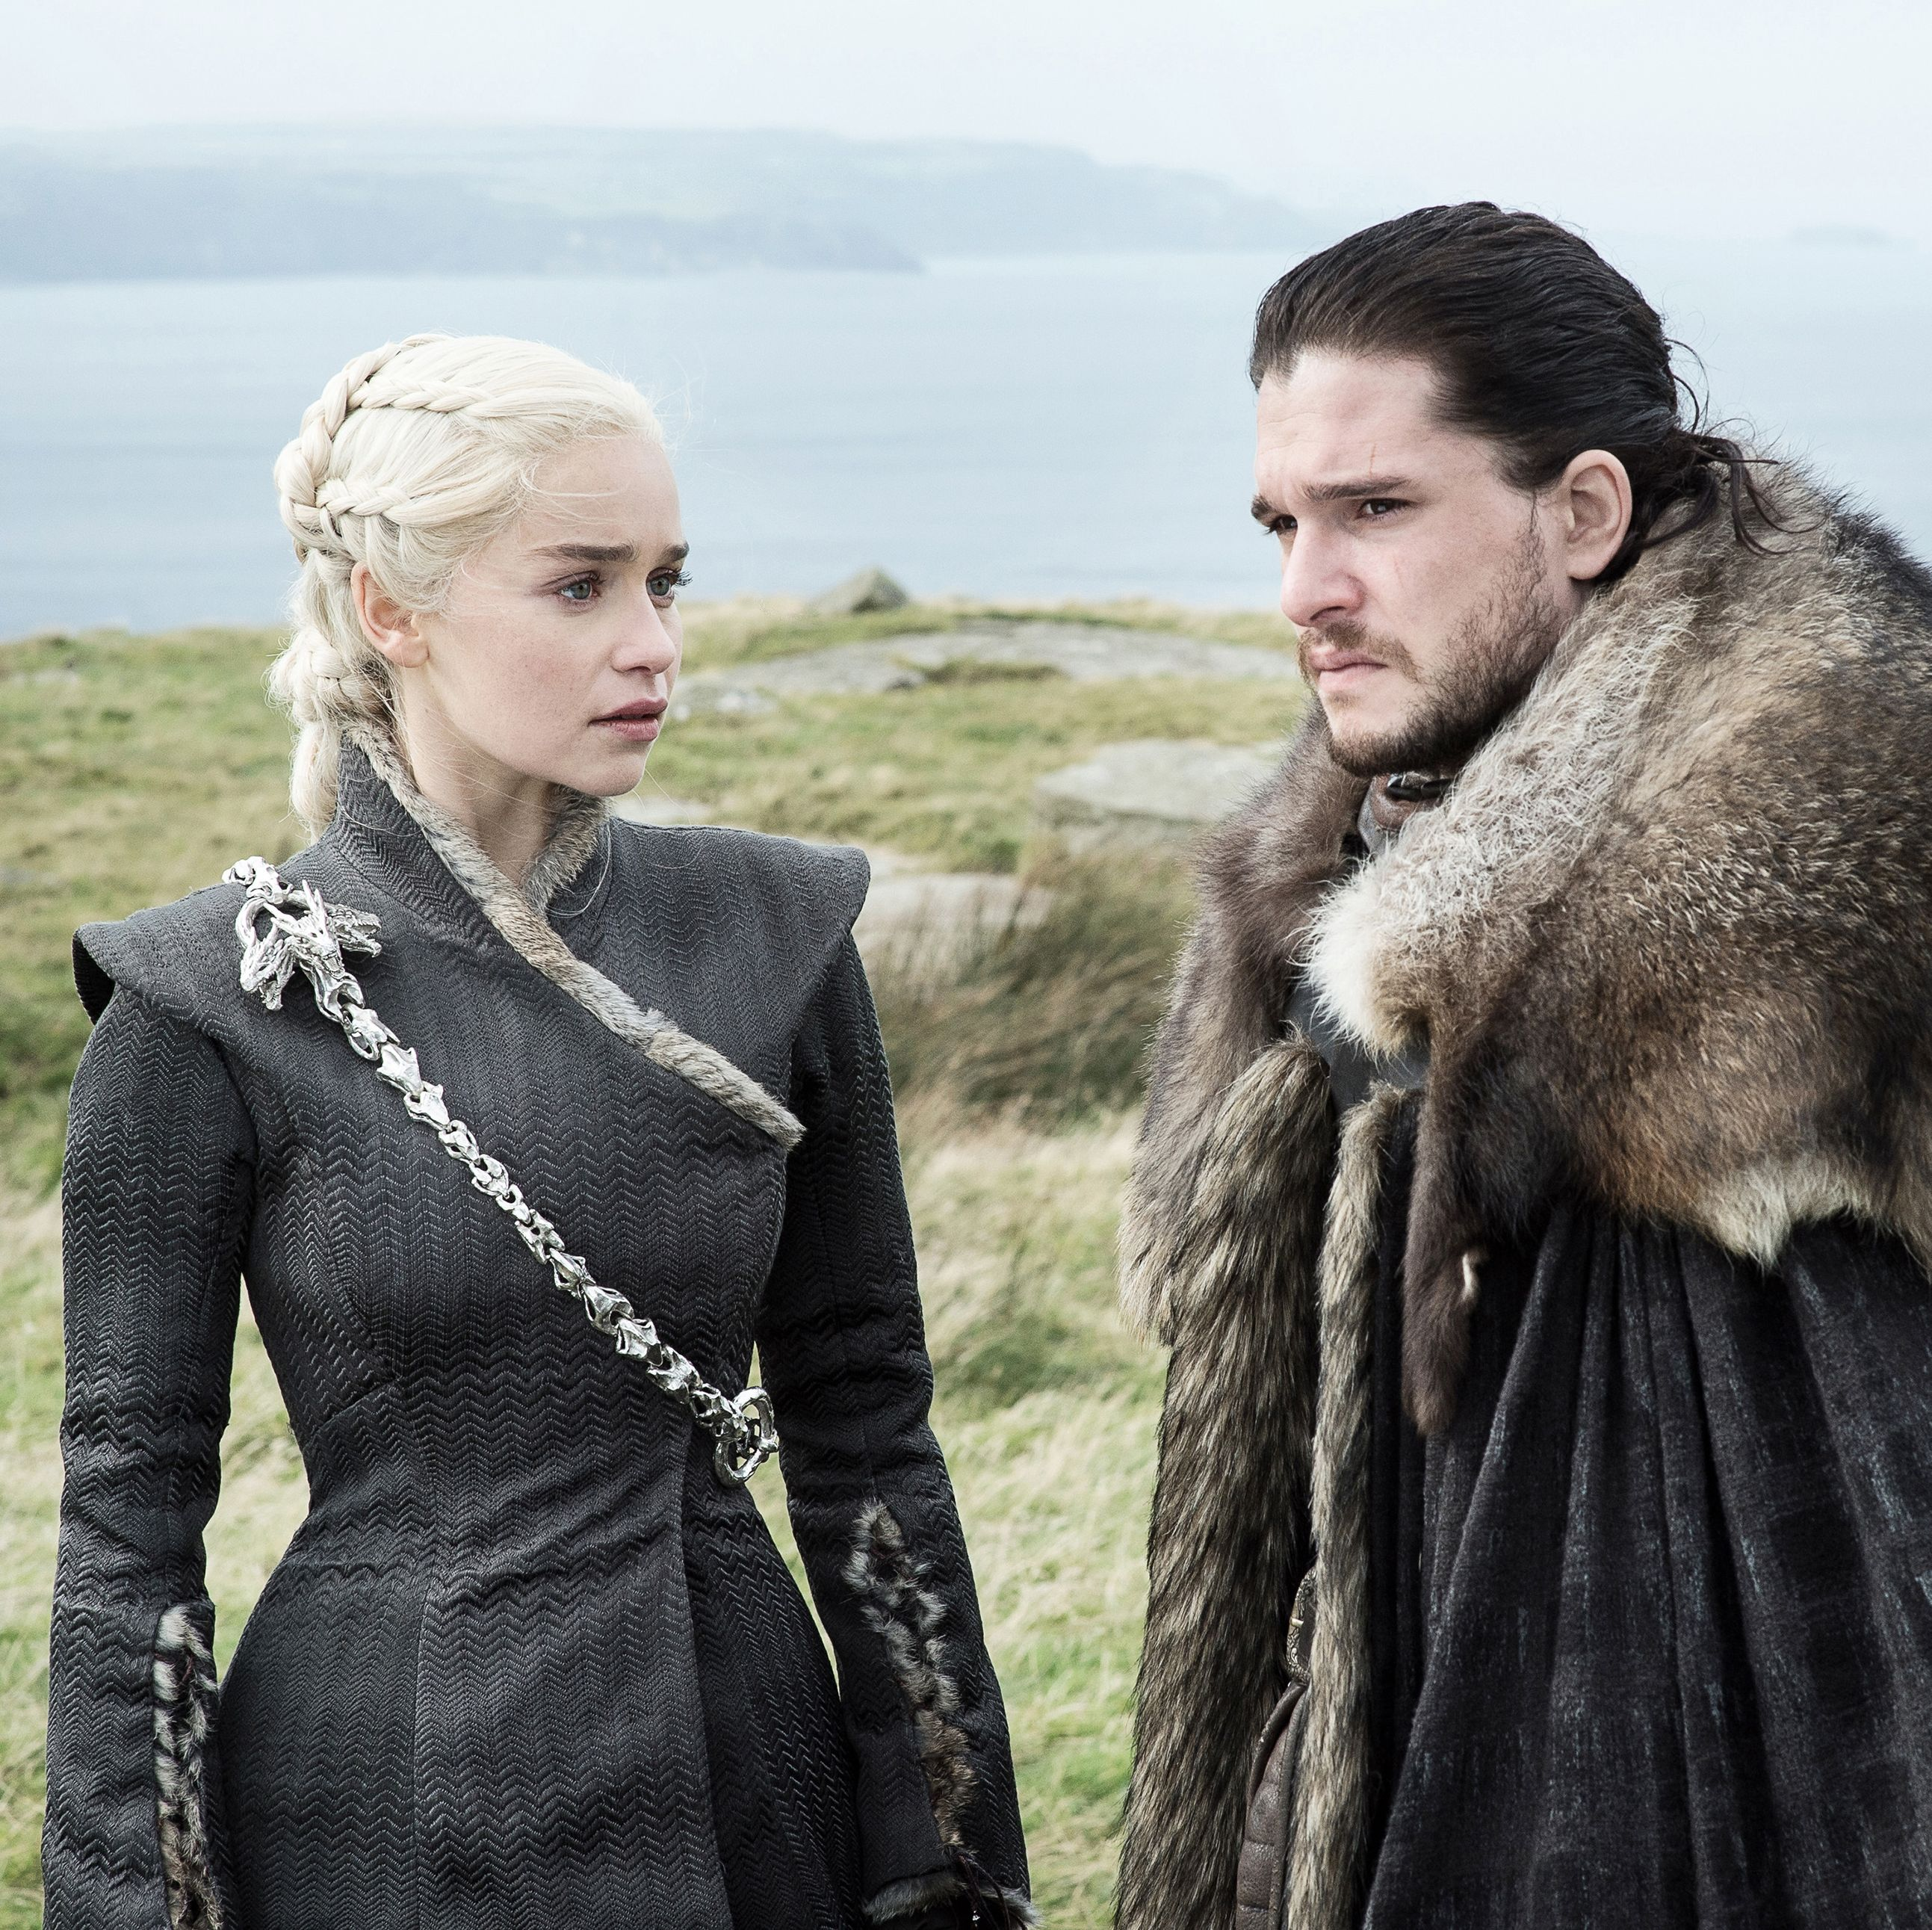 Kit Harington Would Pretend To Vomit After Acting With Emilia Clarke In 'Game Of Thrones' Romance Scenes